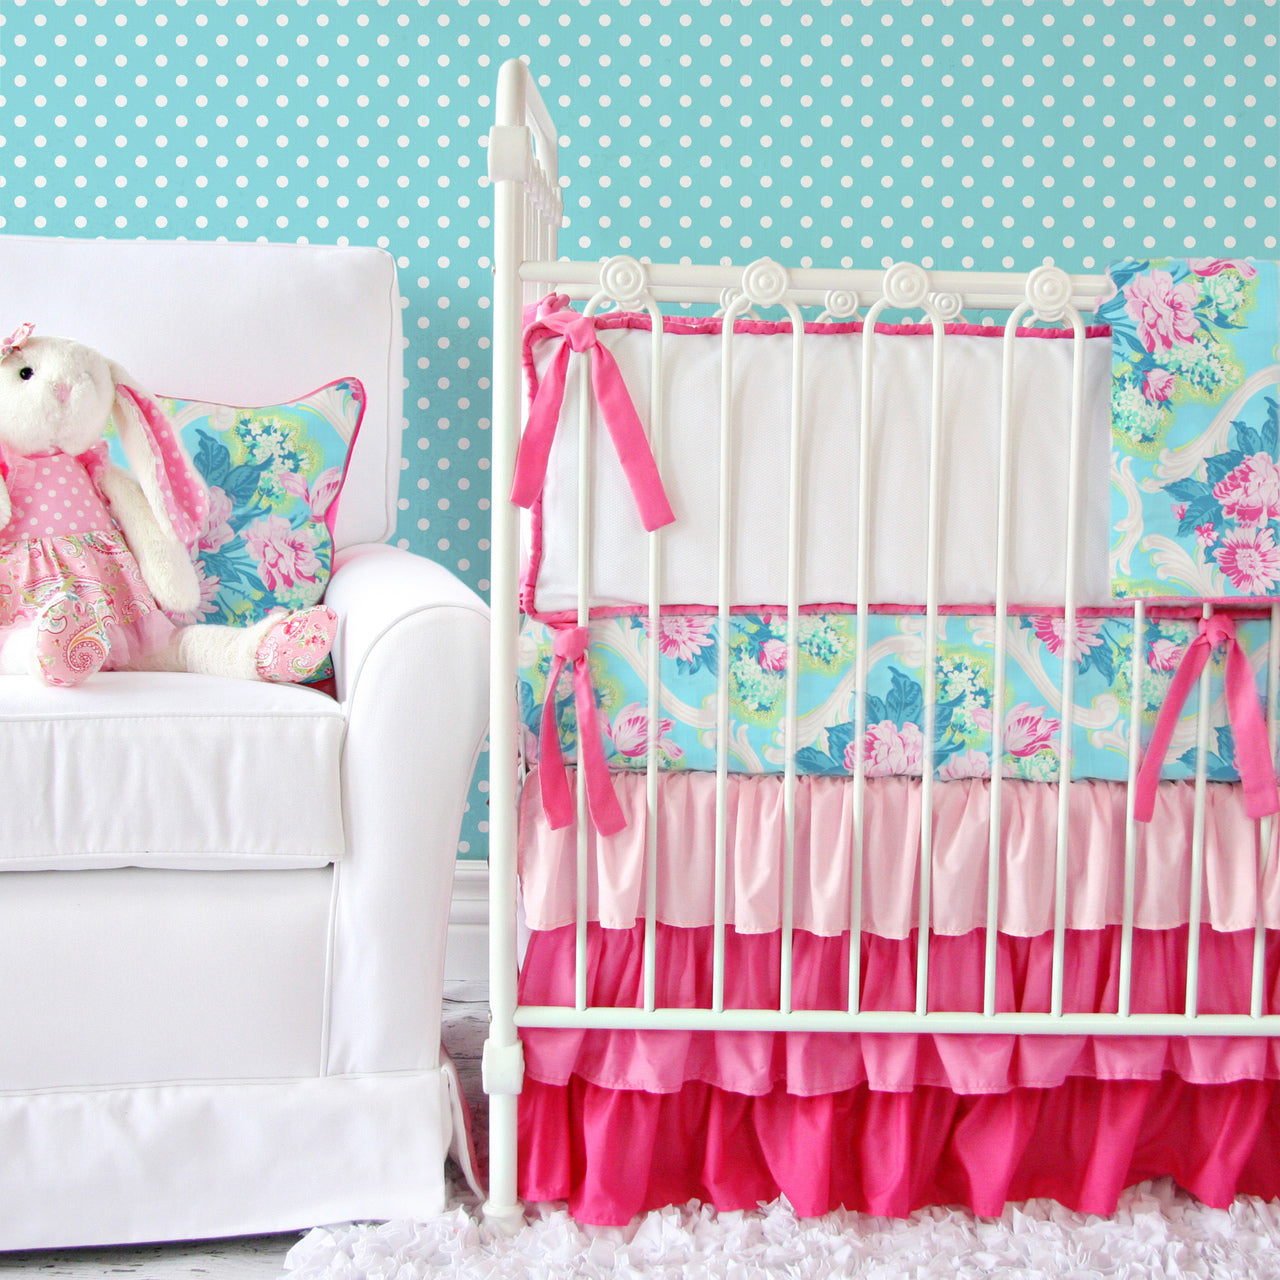 pink and aqua crib bedding for a baby girl